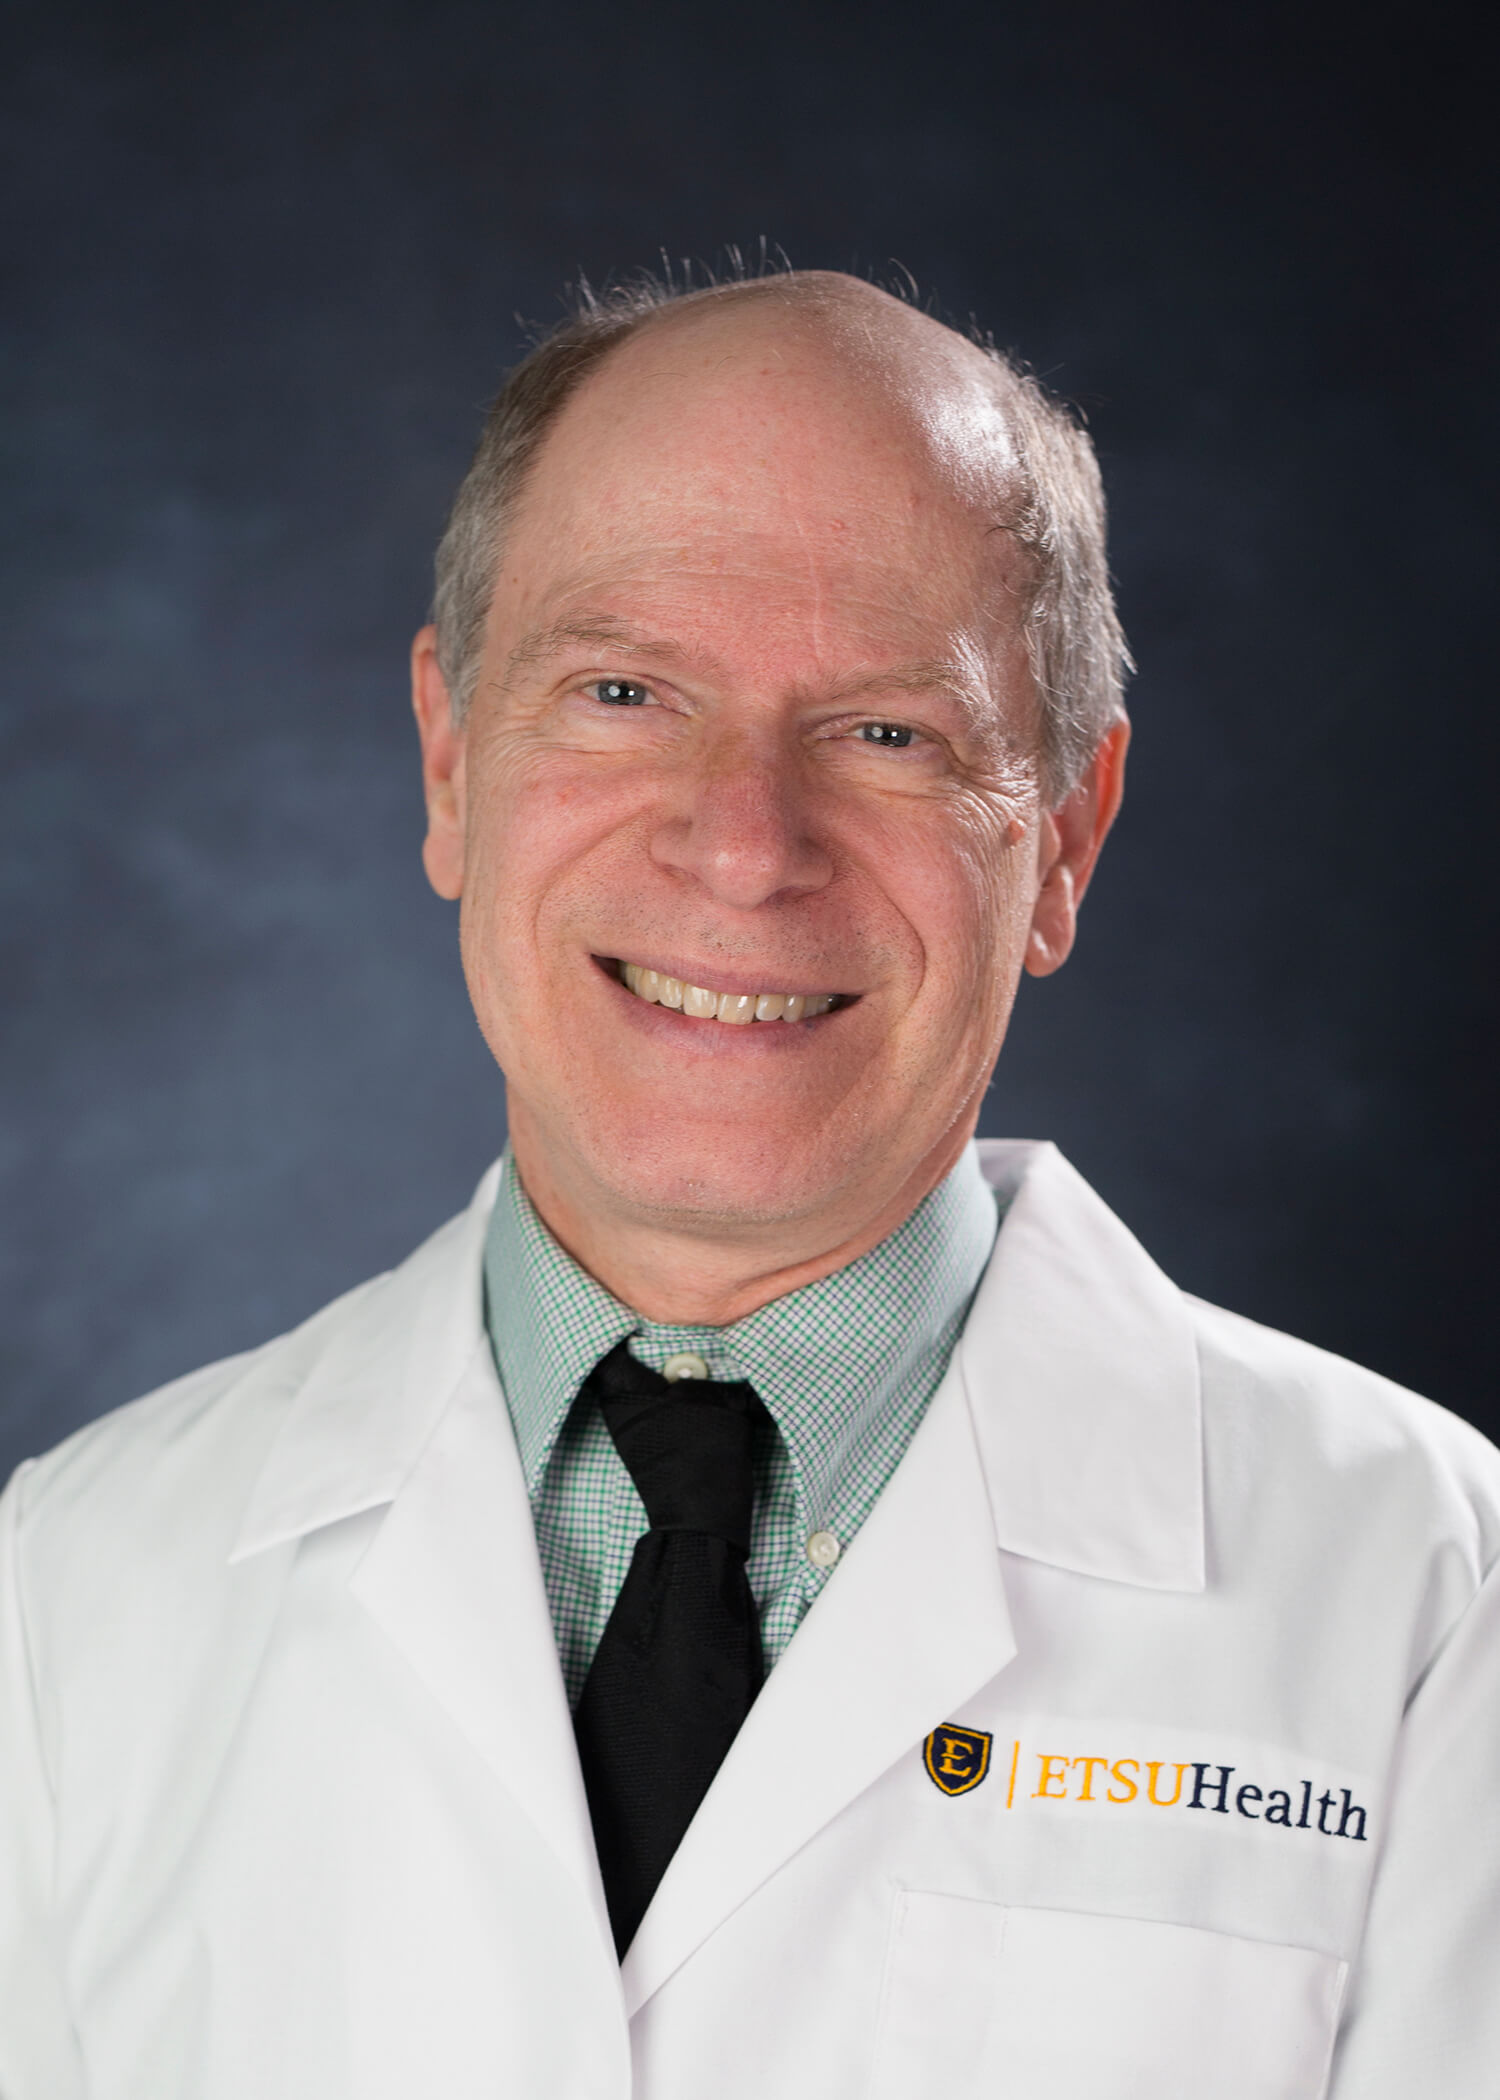 Photo of Jim Holt, M.D., FAAFP